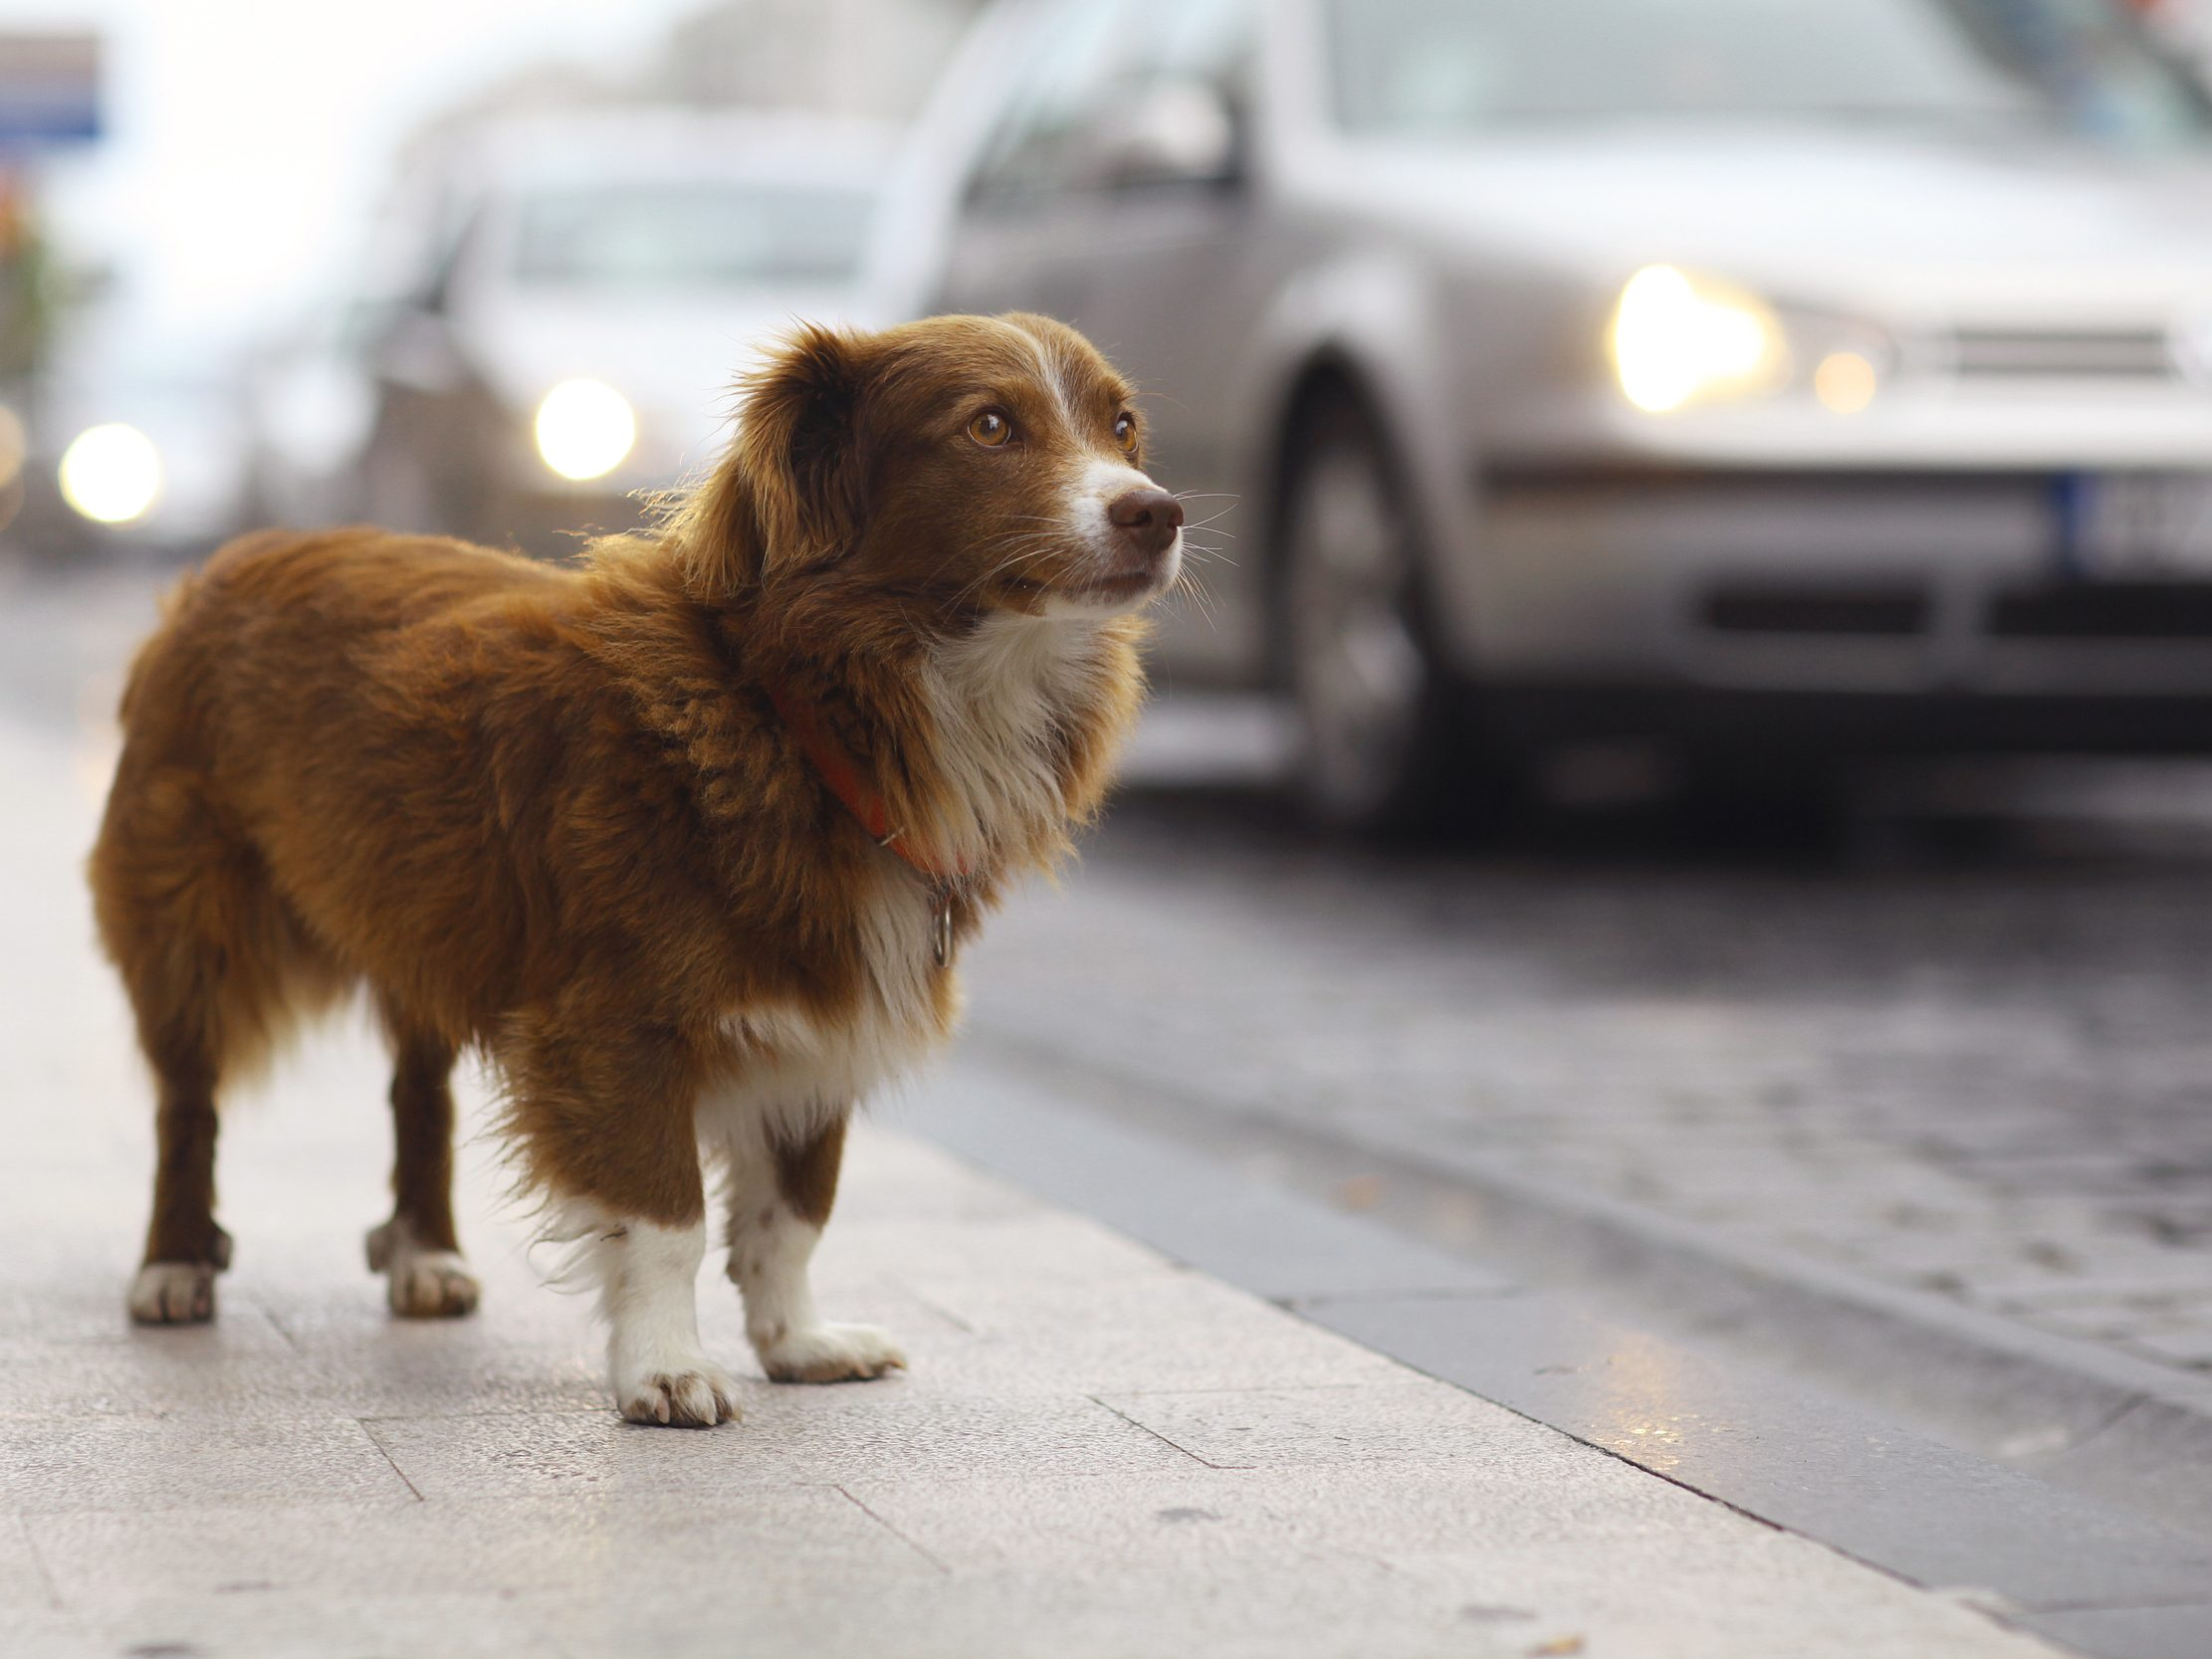 What To Do When a Pet Goes Missing